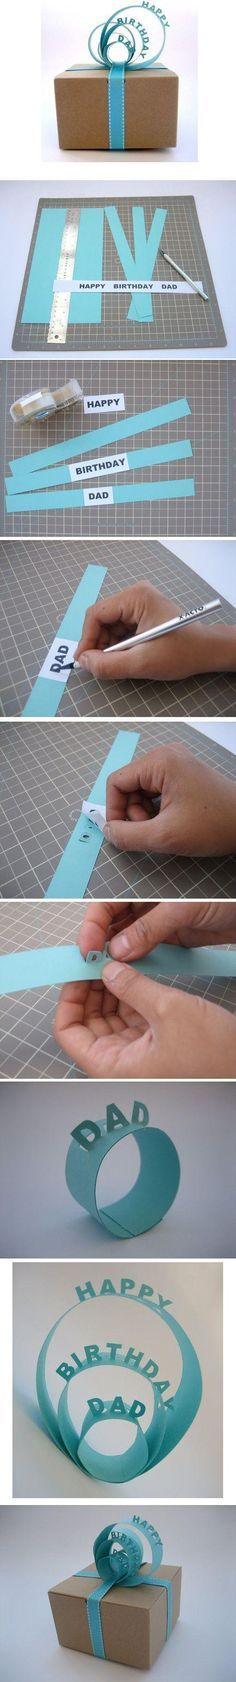 How to Make 3D Sign Gift Topper to Decorate a Gift -